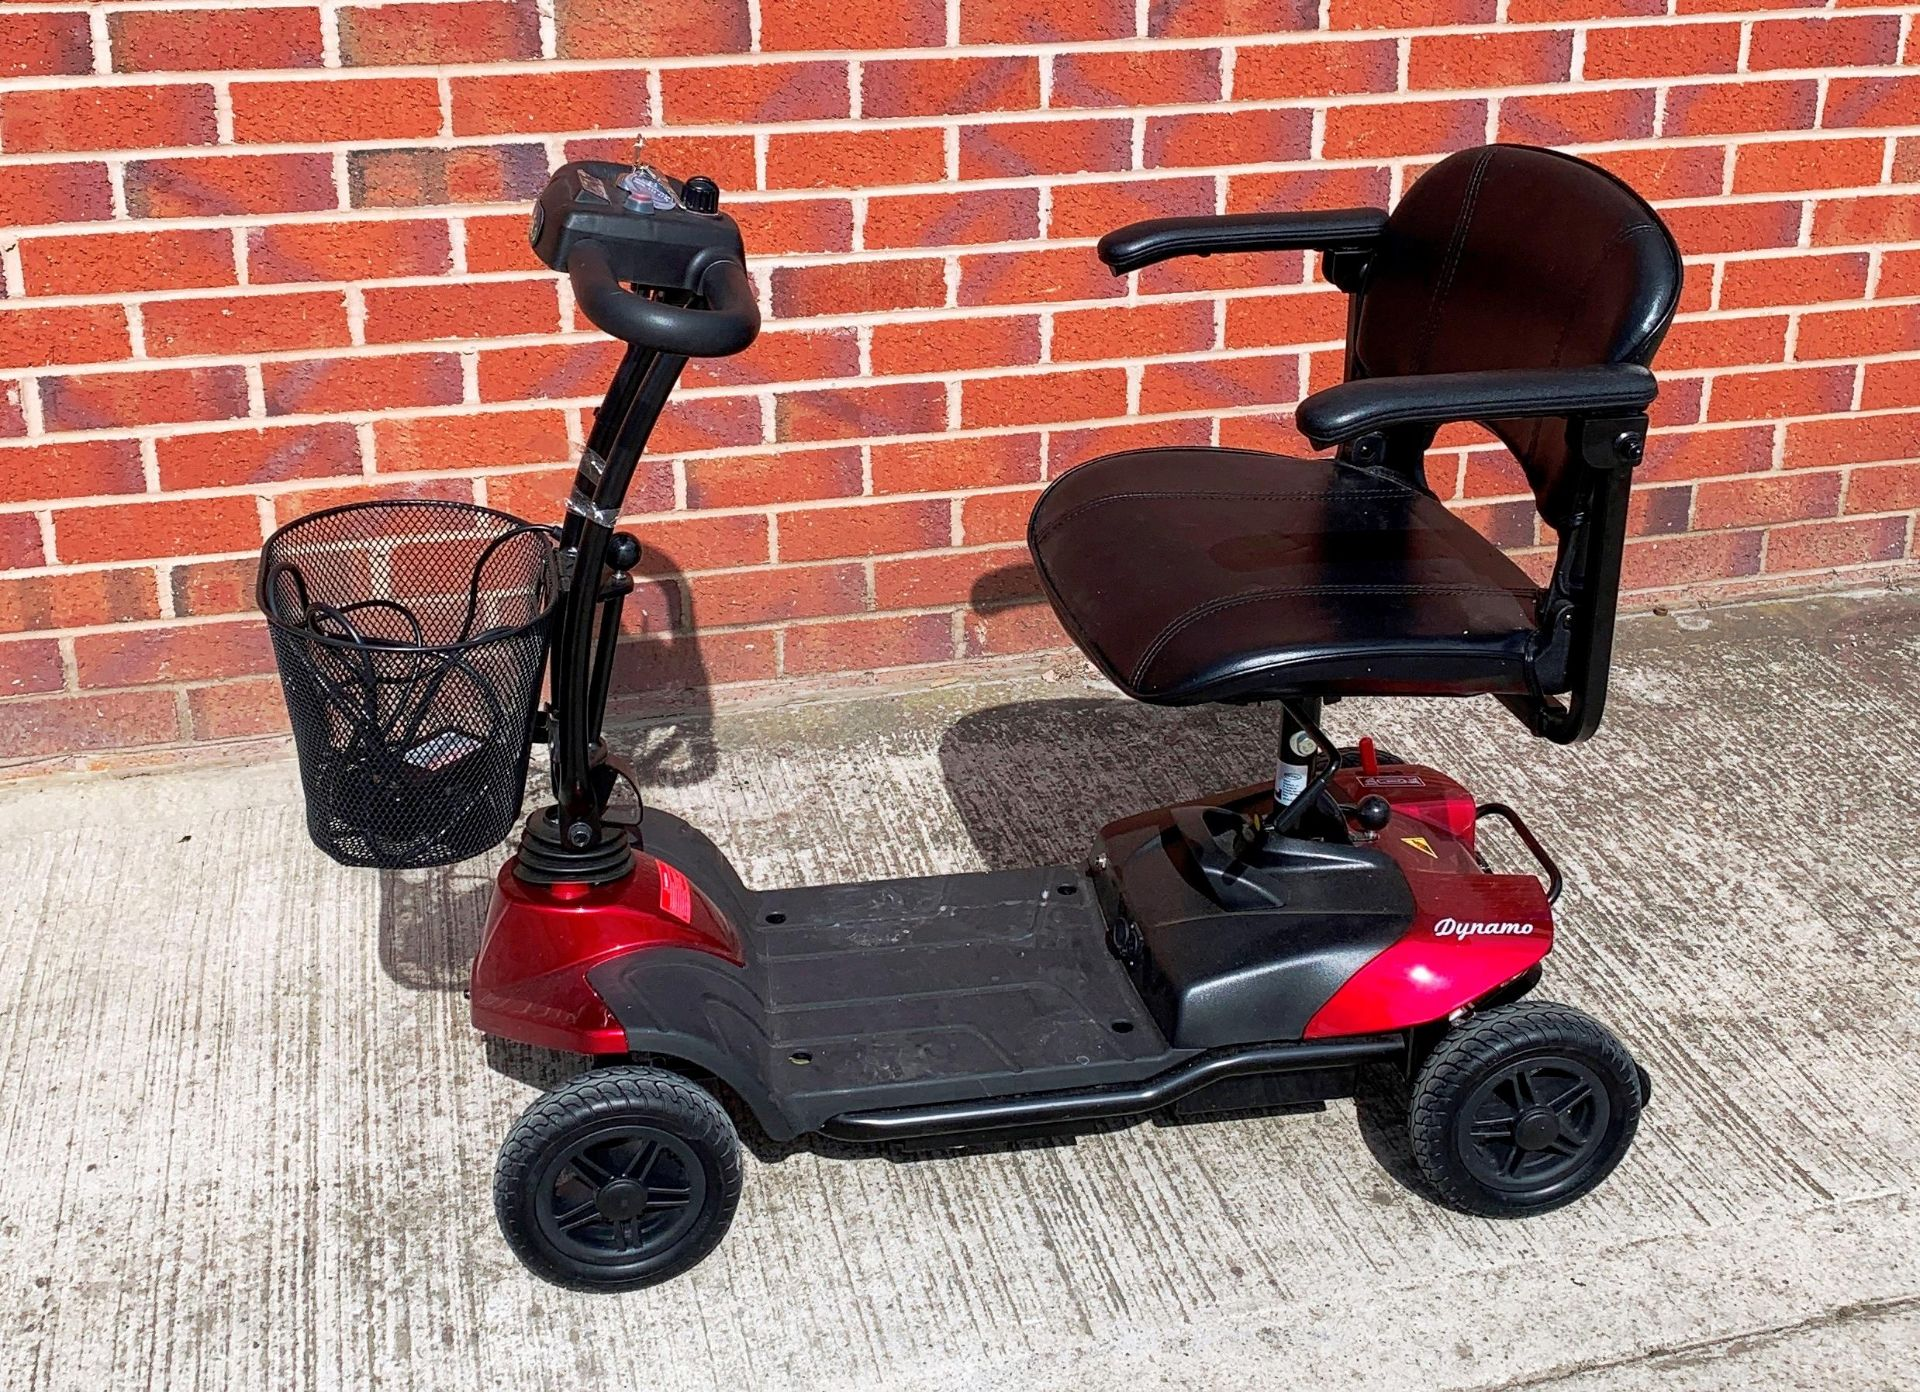 A CTM Dynamo 4 wheel mobility scooter - max weight 115 kg, S/N 18AHC6315 - date of manufacture 02.